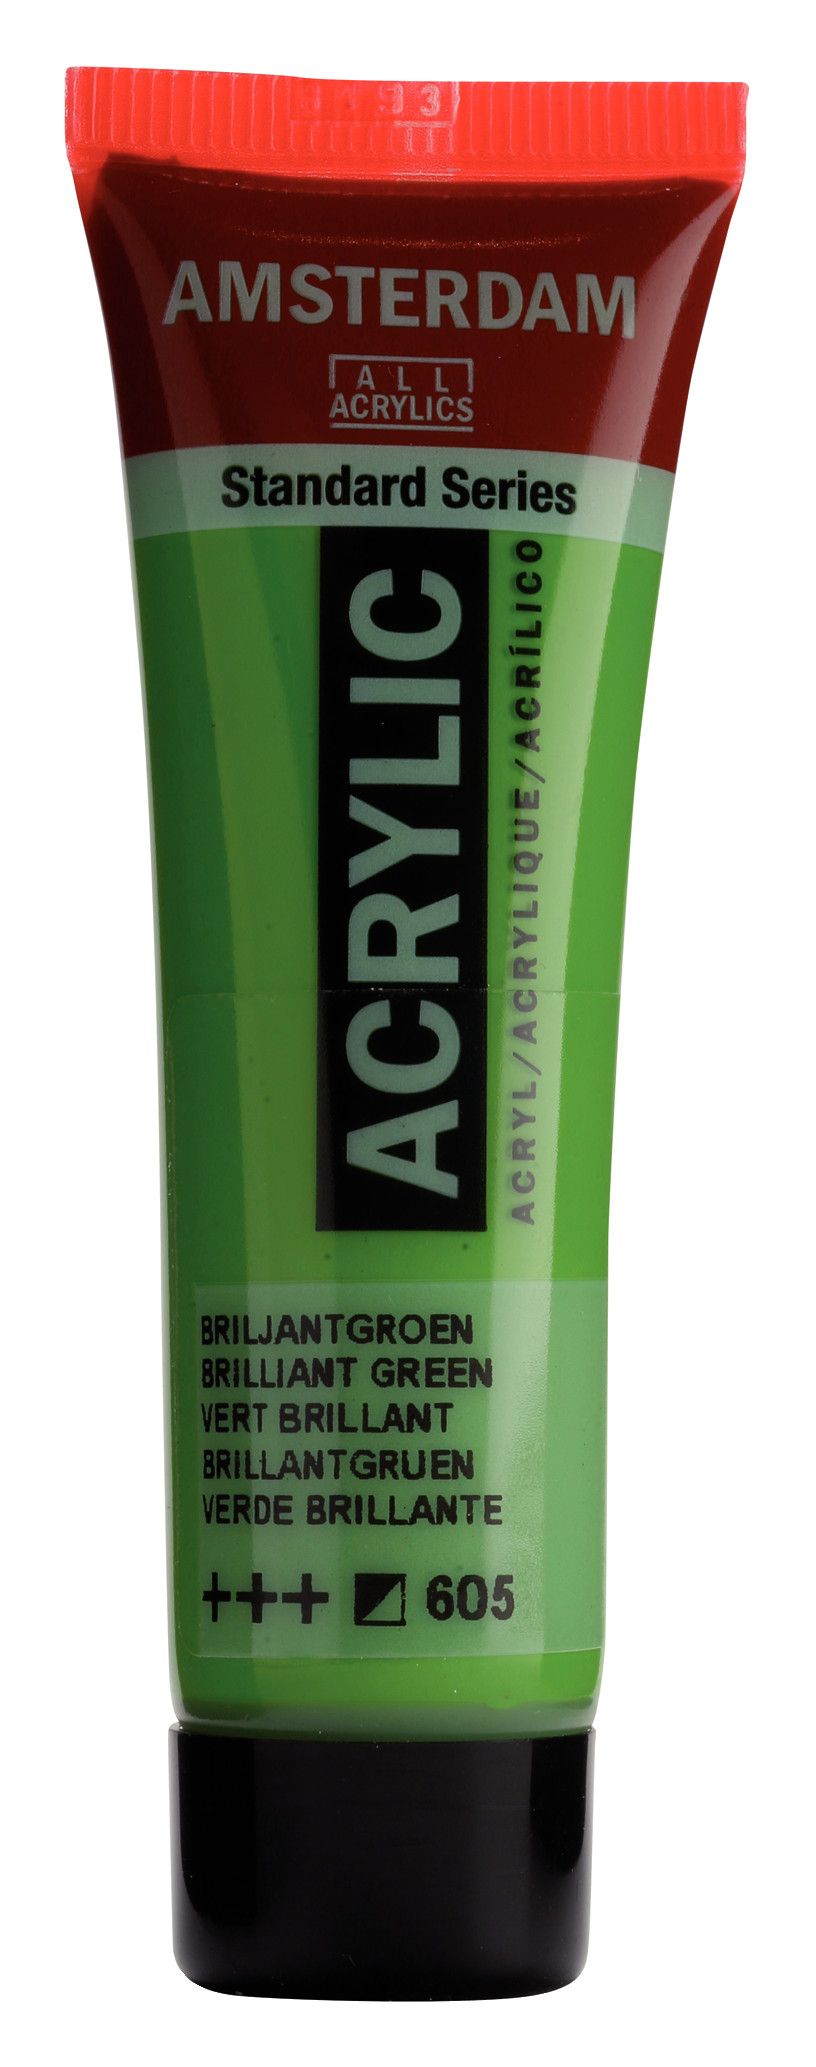 Amsterdam Standard Series Acrylic Tube 20 ml Brilliant Green 605